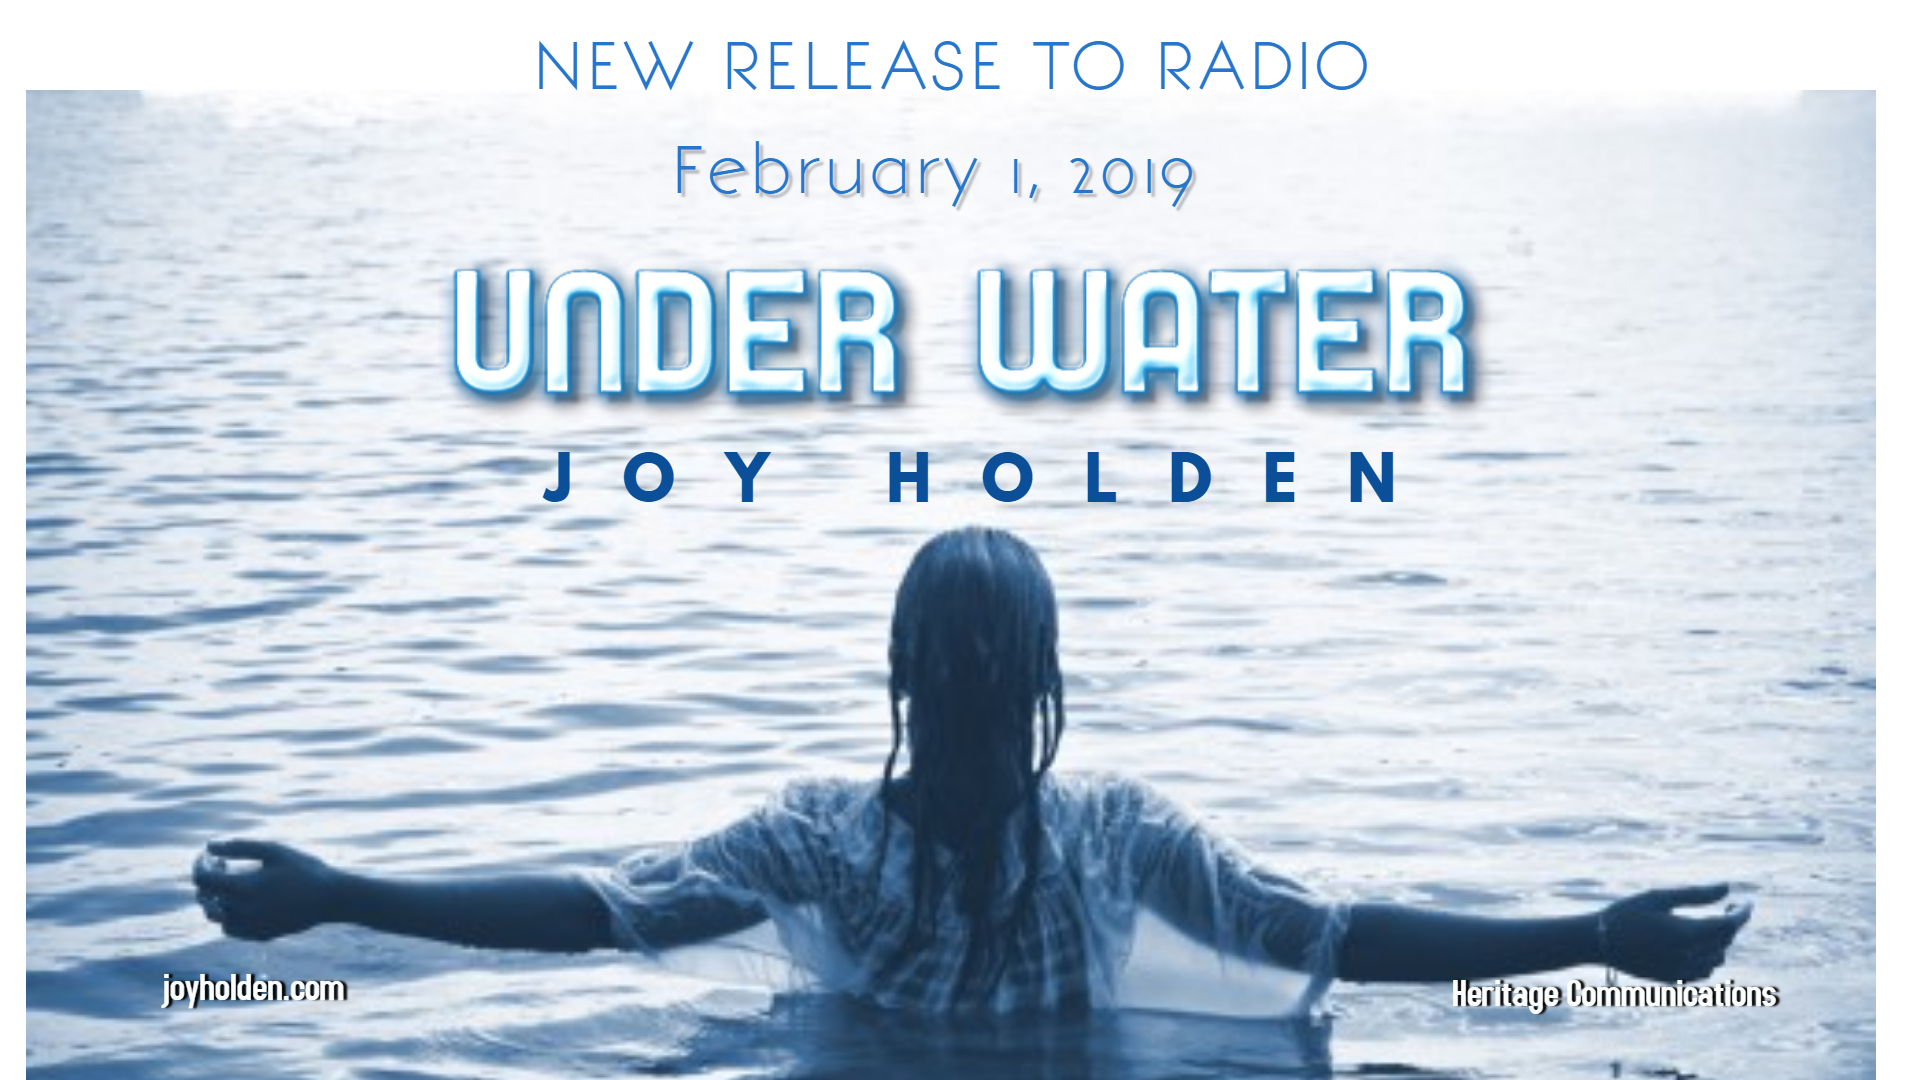 under-water-radio-release-large-size-01-28-19.jpg